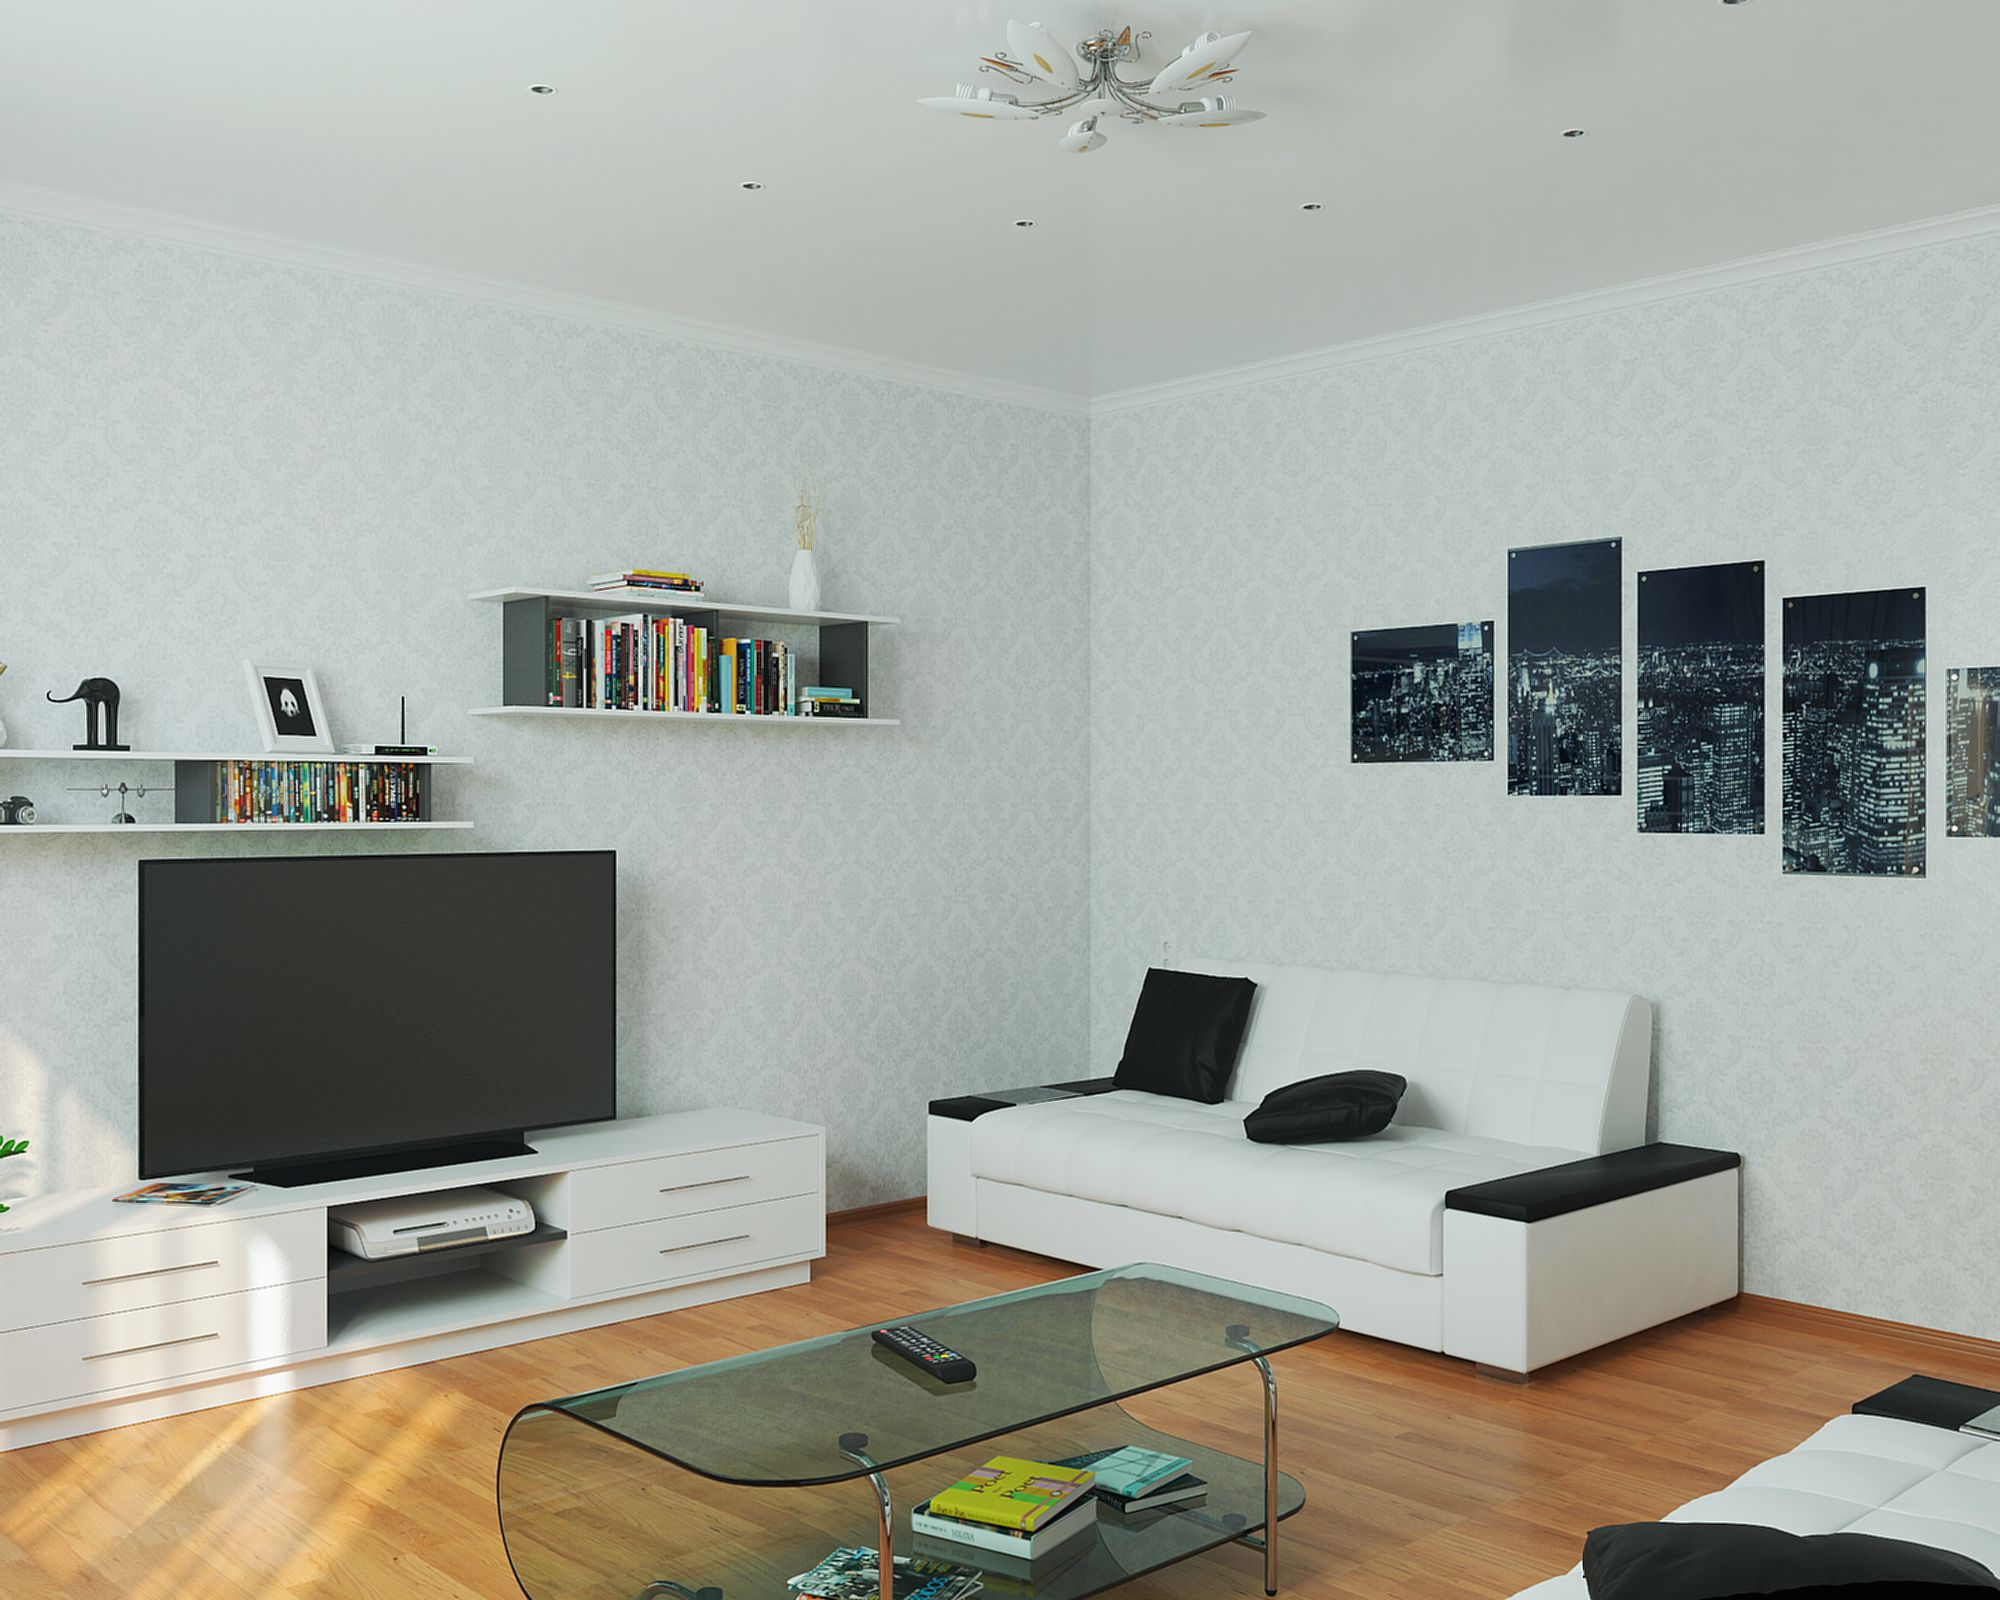 3d visualization of the project in the 3d max, render vray 3.0 of anorexia